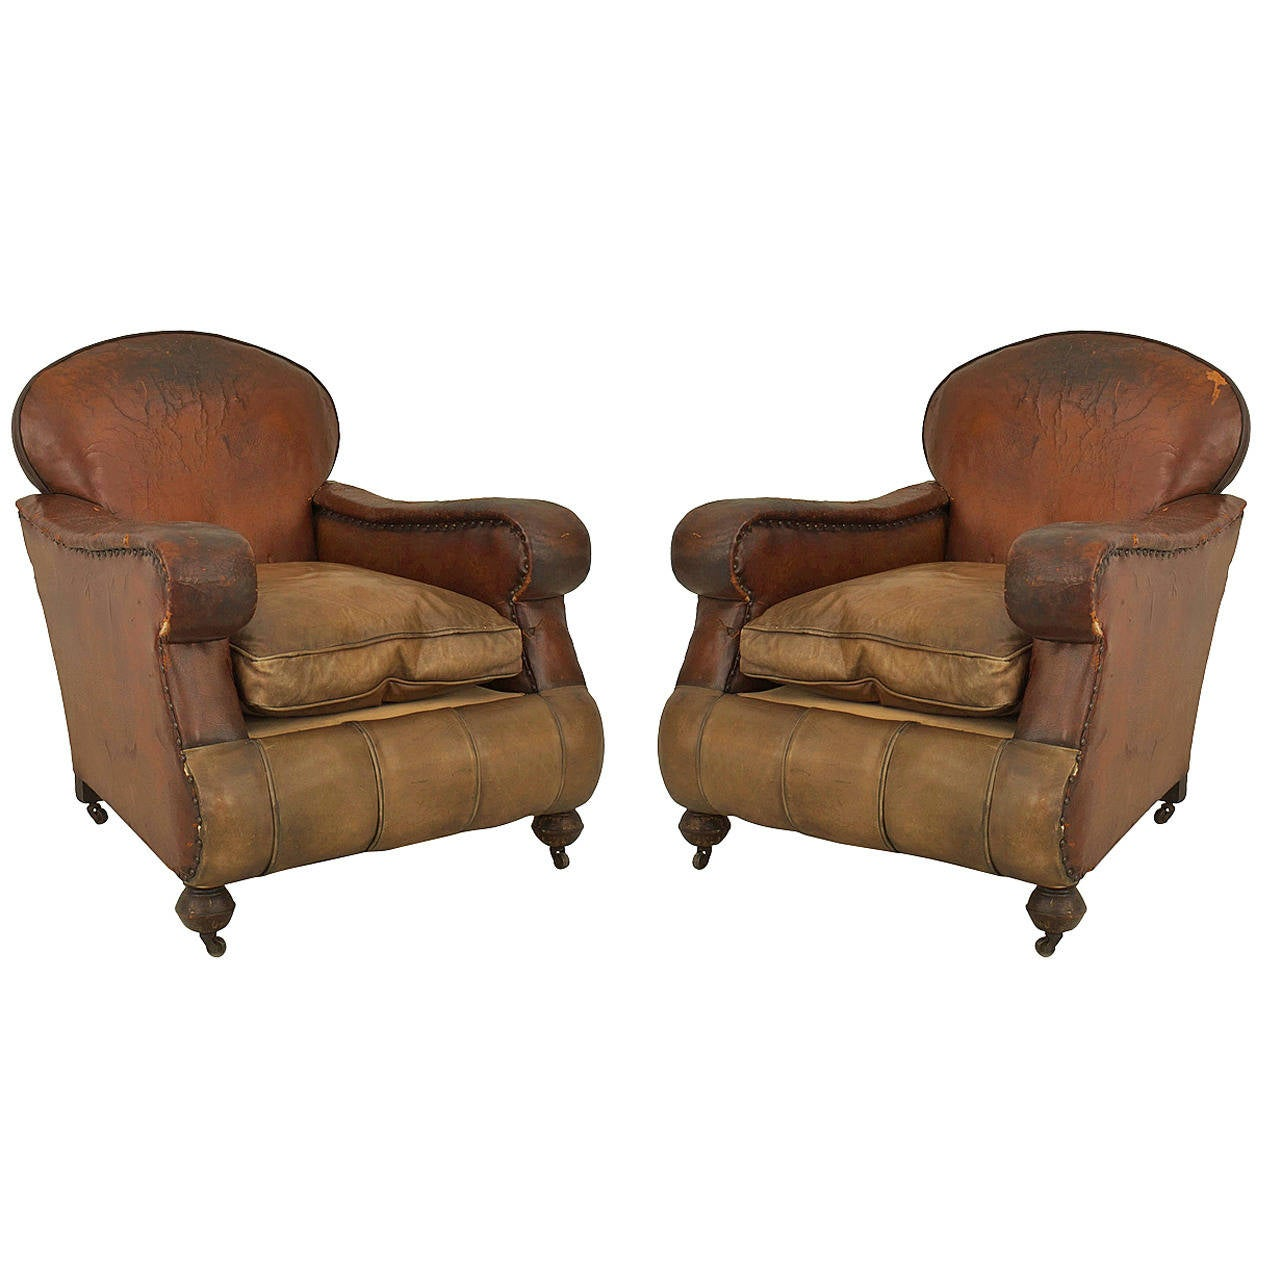 leather club chairs for sale hanging rattan chair pair of 19th century english oversized brown